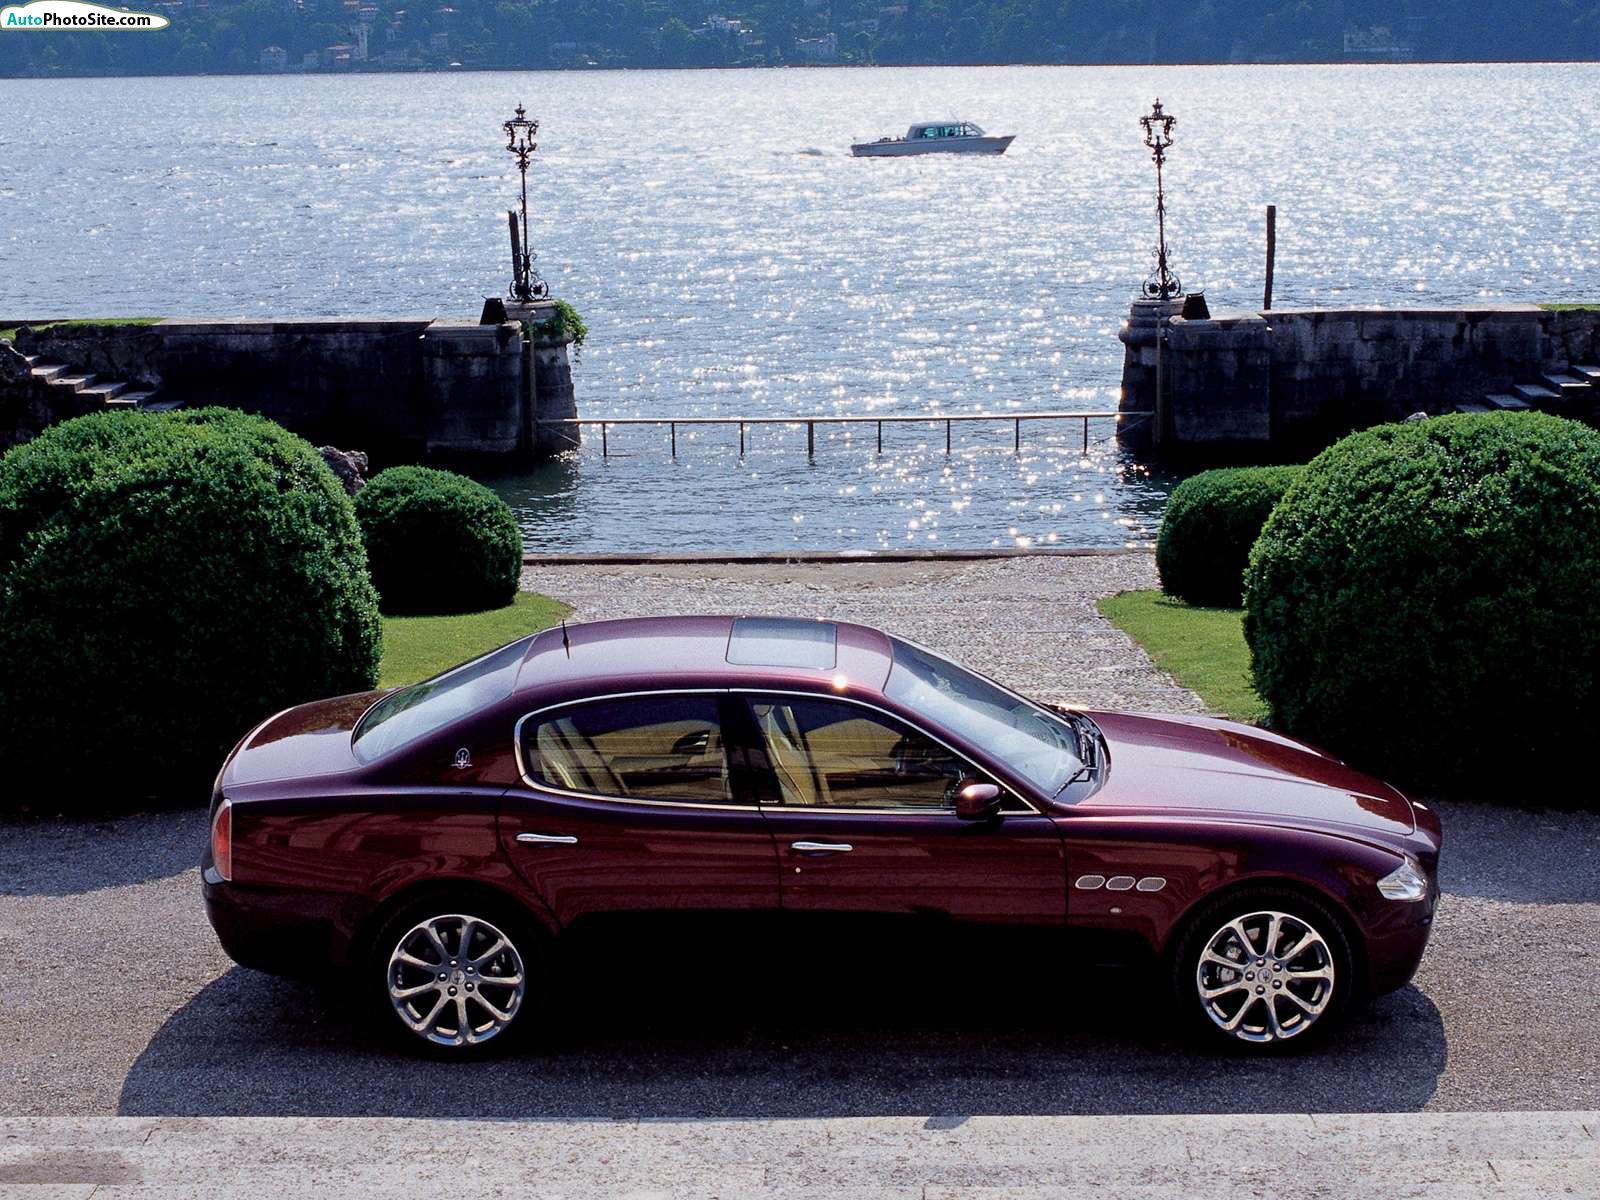 1997 Maserati Quattroporte iii - pictures, information and ...